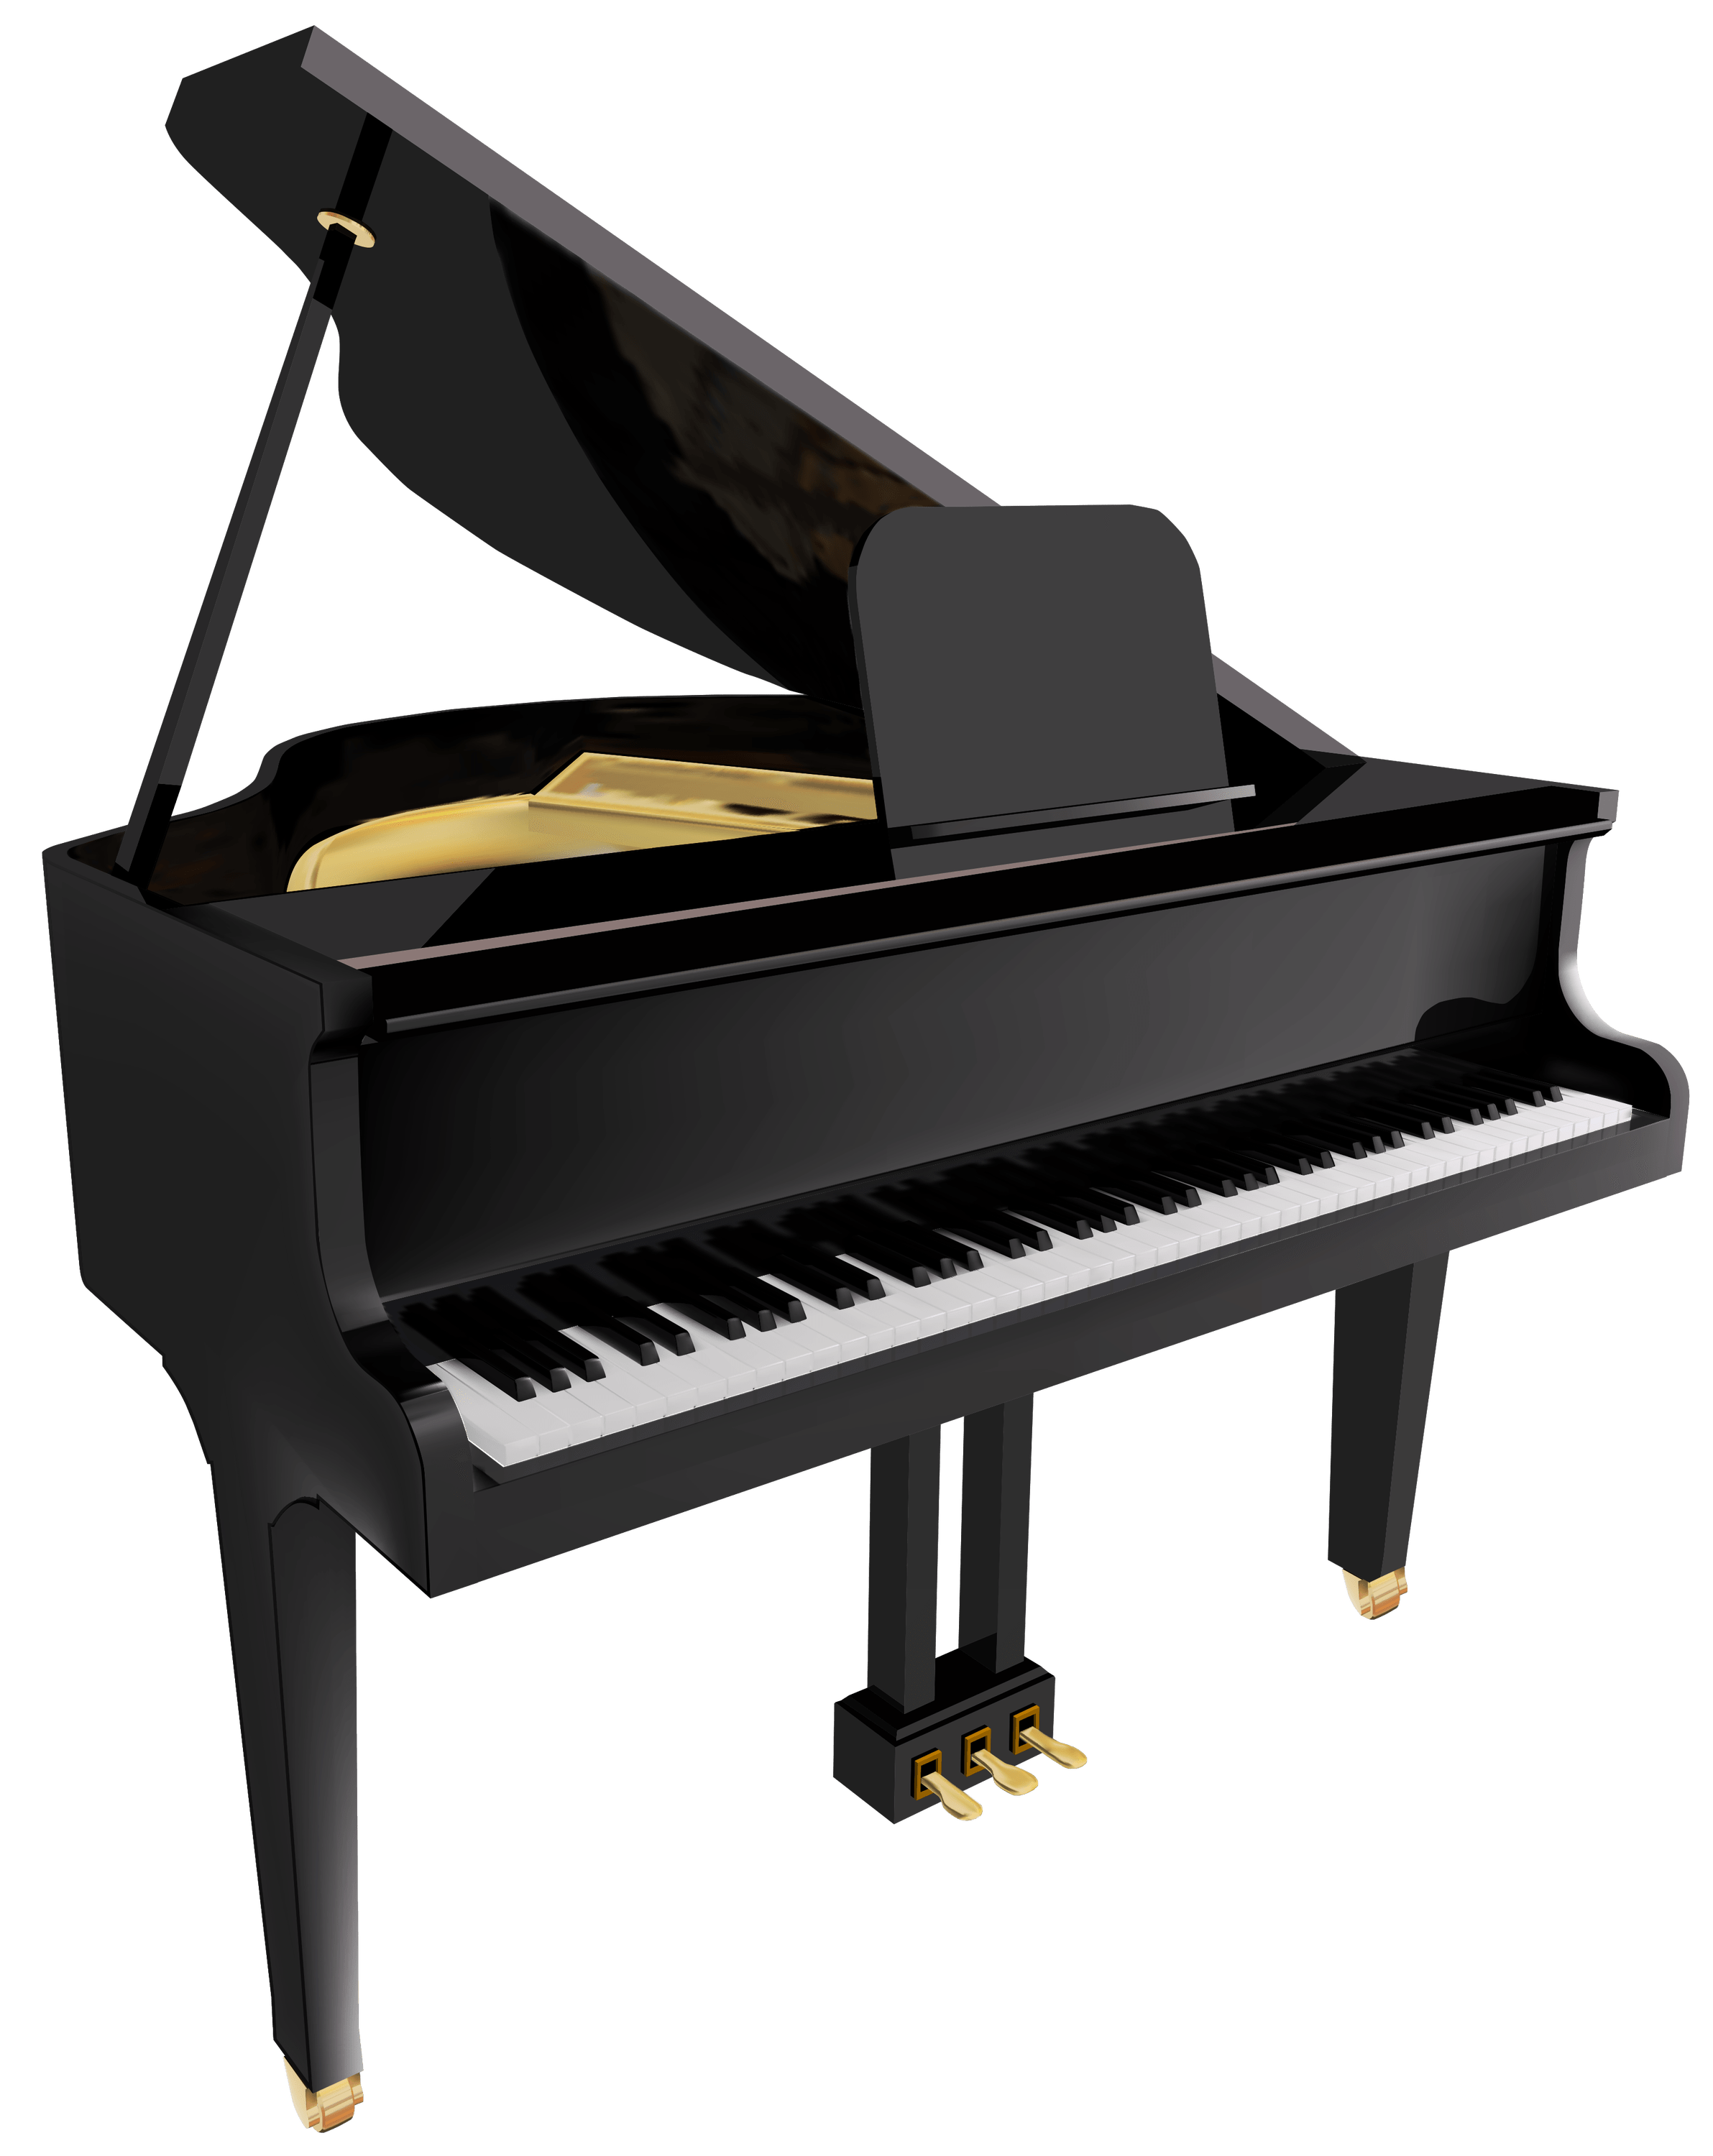 piano clipart old piano